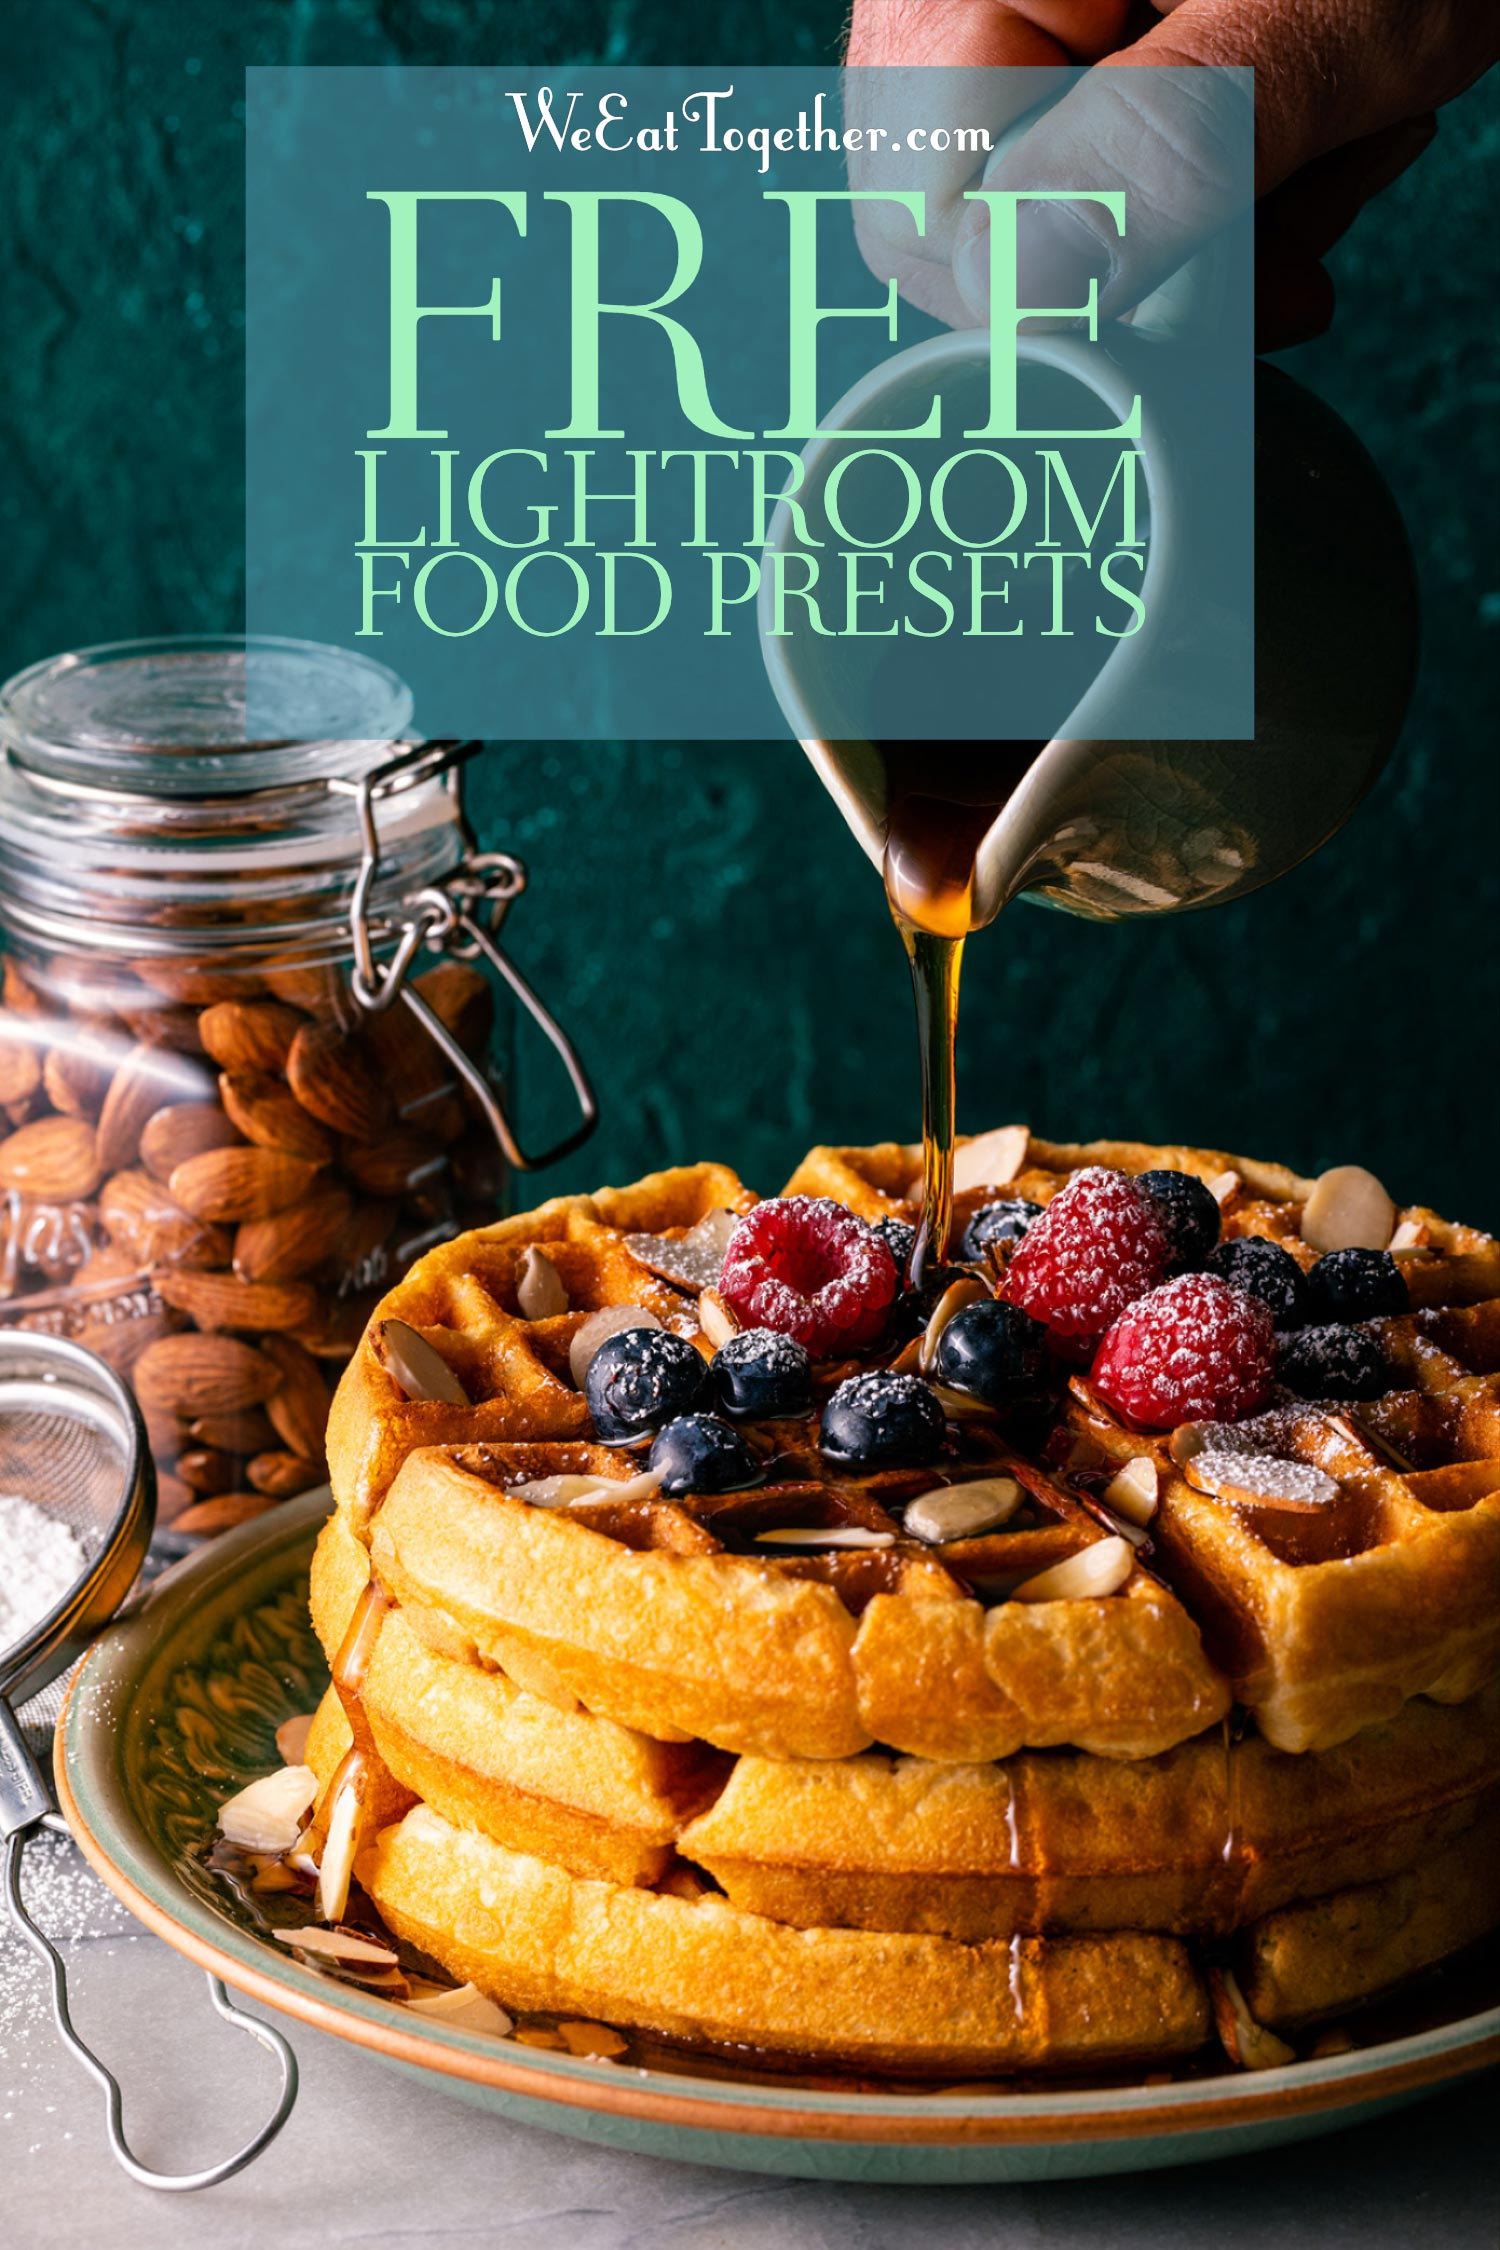 5 amazing free Lightroom presets for food photography! Plus there are 35 more you can get to make editing quick and beautiful. Perfect for food bloggers and Instagram!